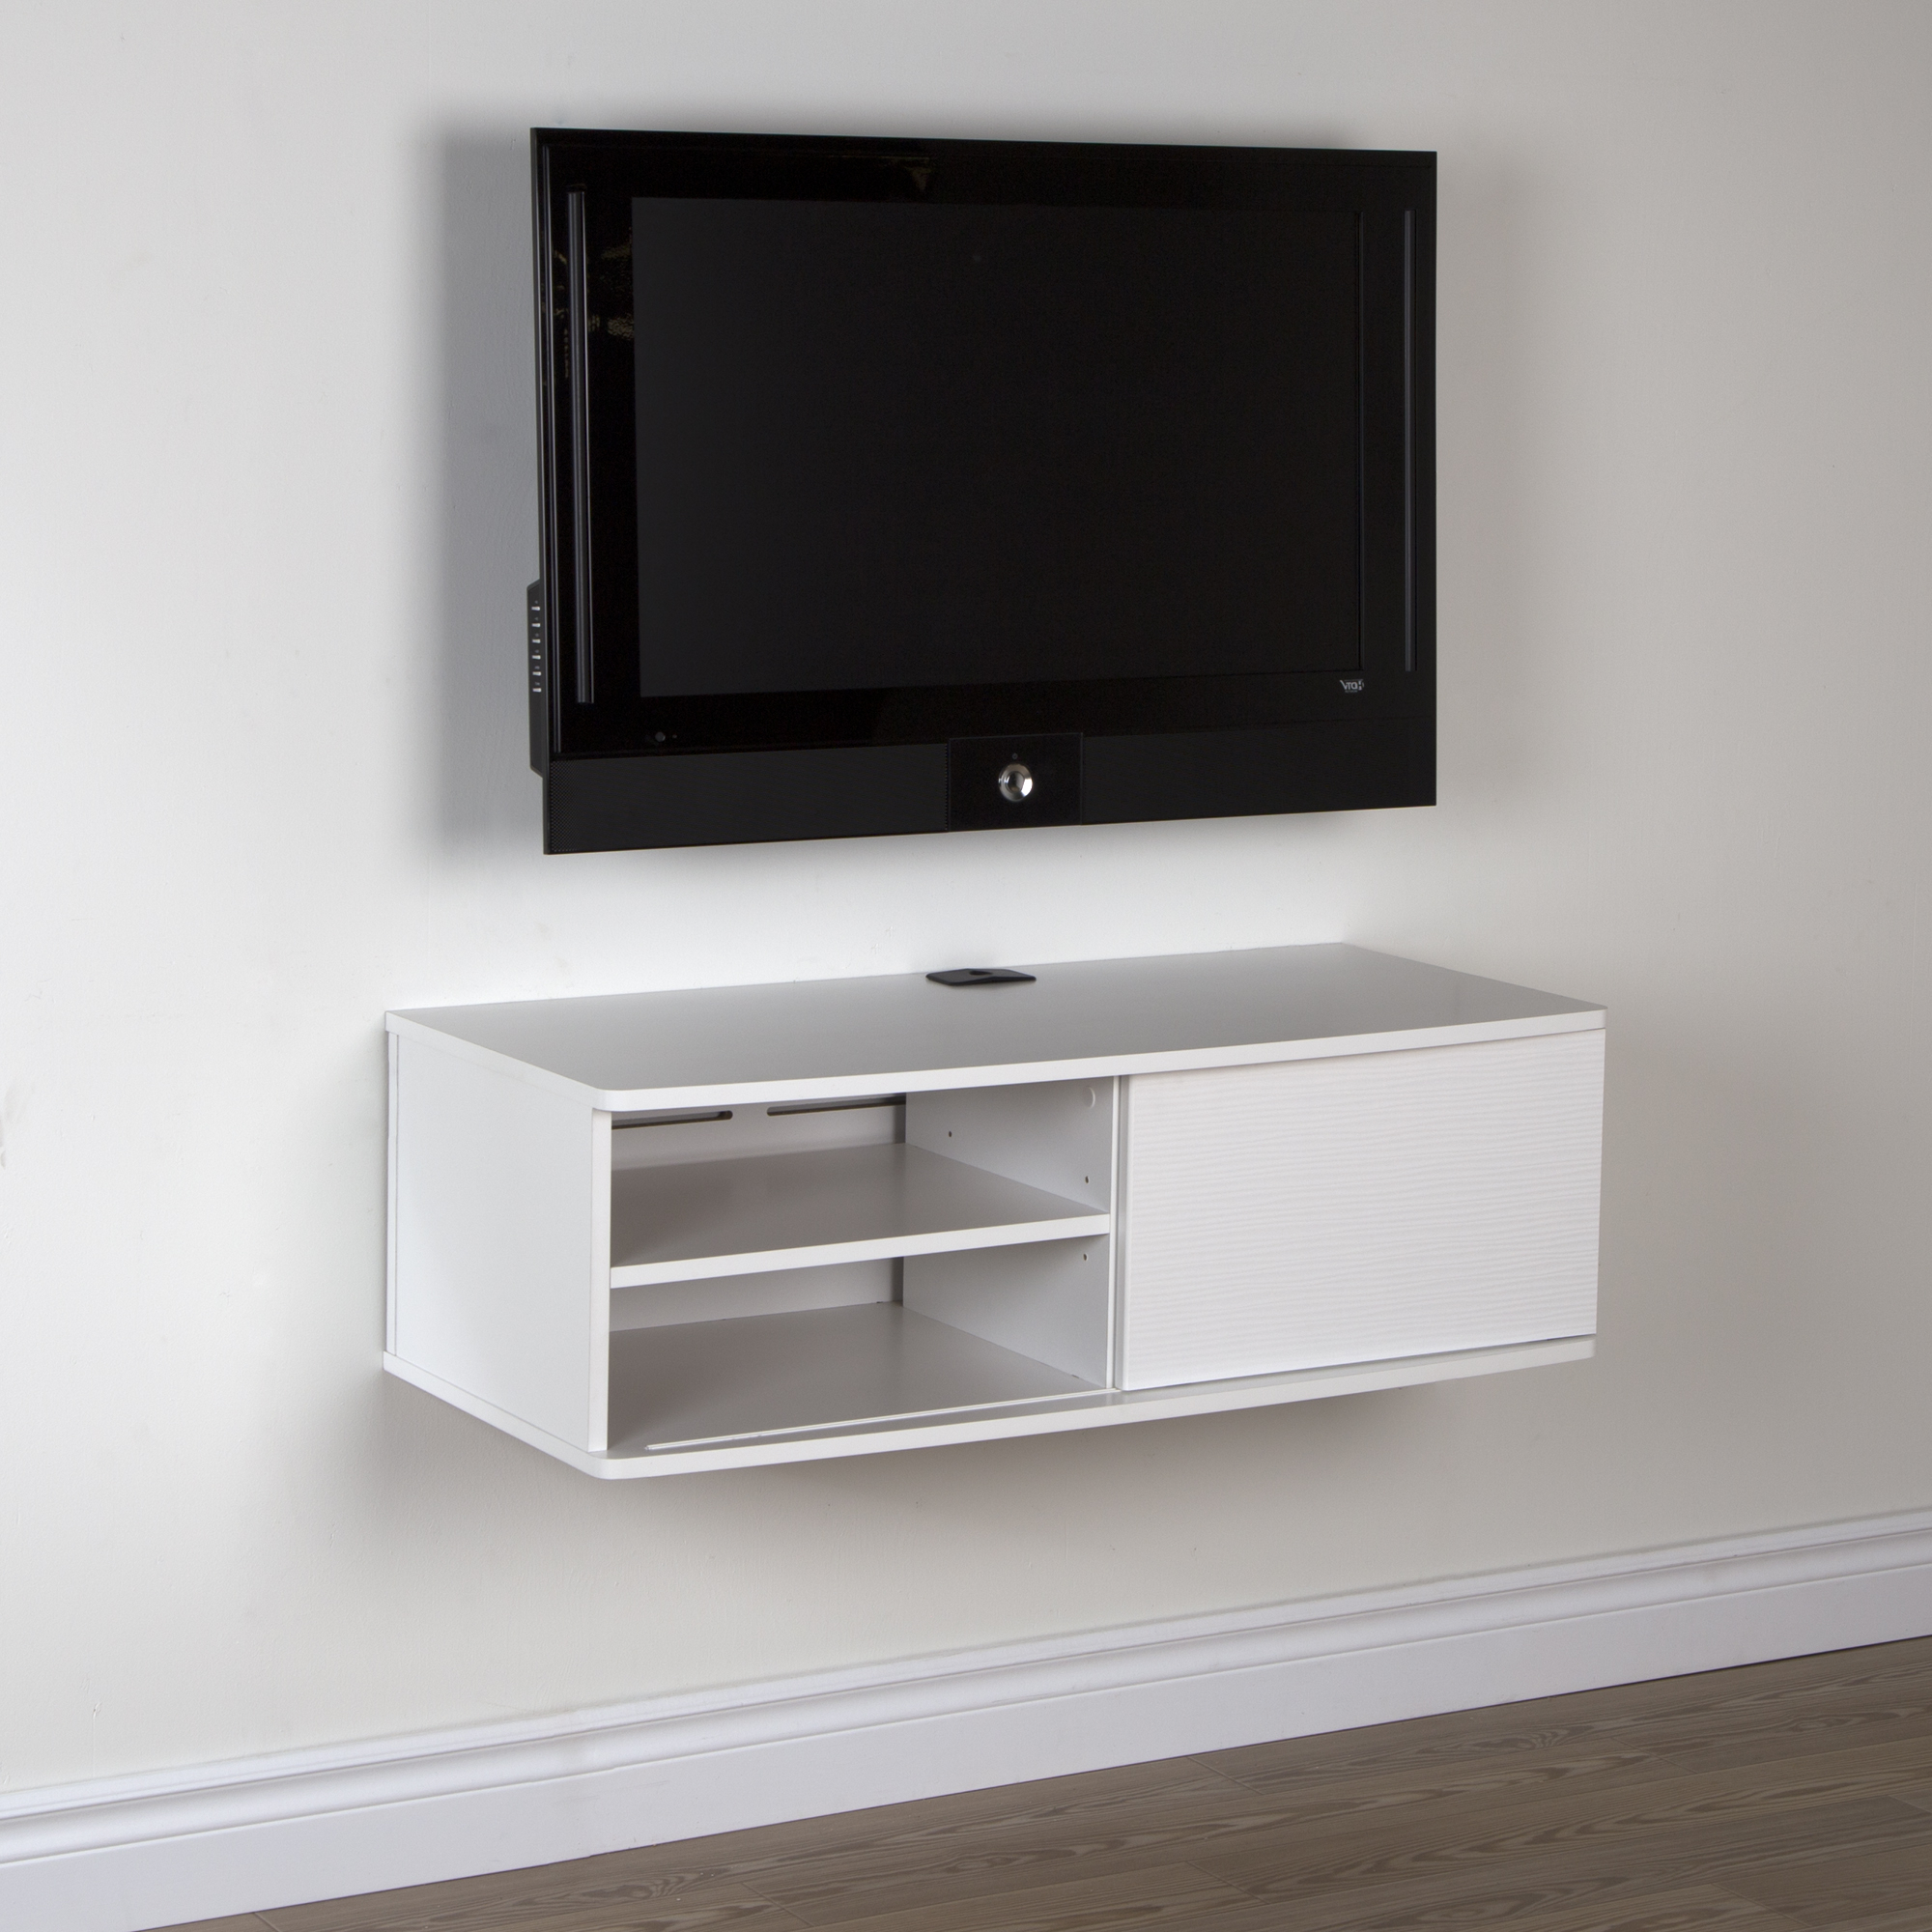 Most Popular Tv Stands 38 Inches Wide For Wall Mounted Tv Stand For Tvs Up To 38 Inch White Sliding Door Media (View 8 of 20)